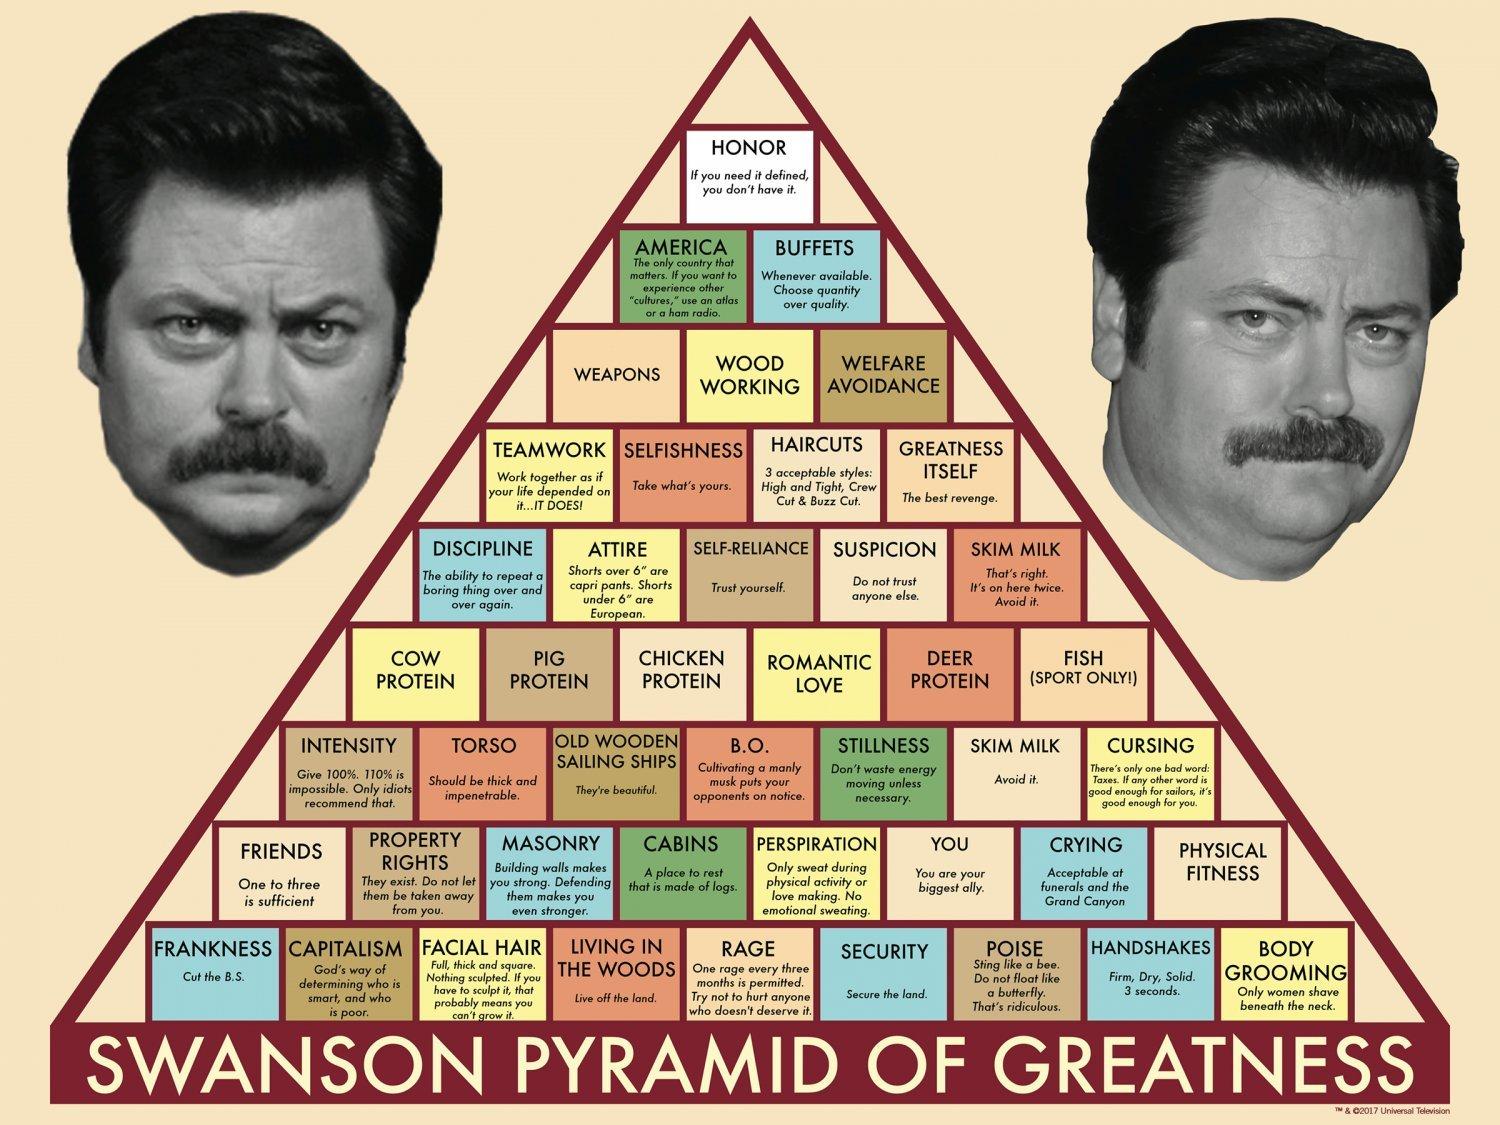 Swanson Pyramid of Greatness Chart 18x28 inches Poster Print